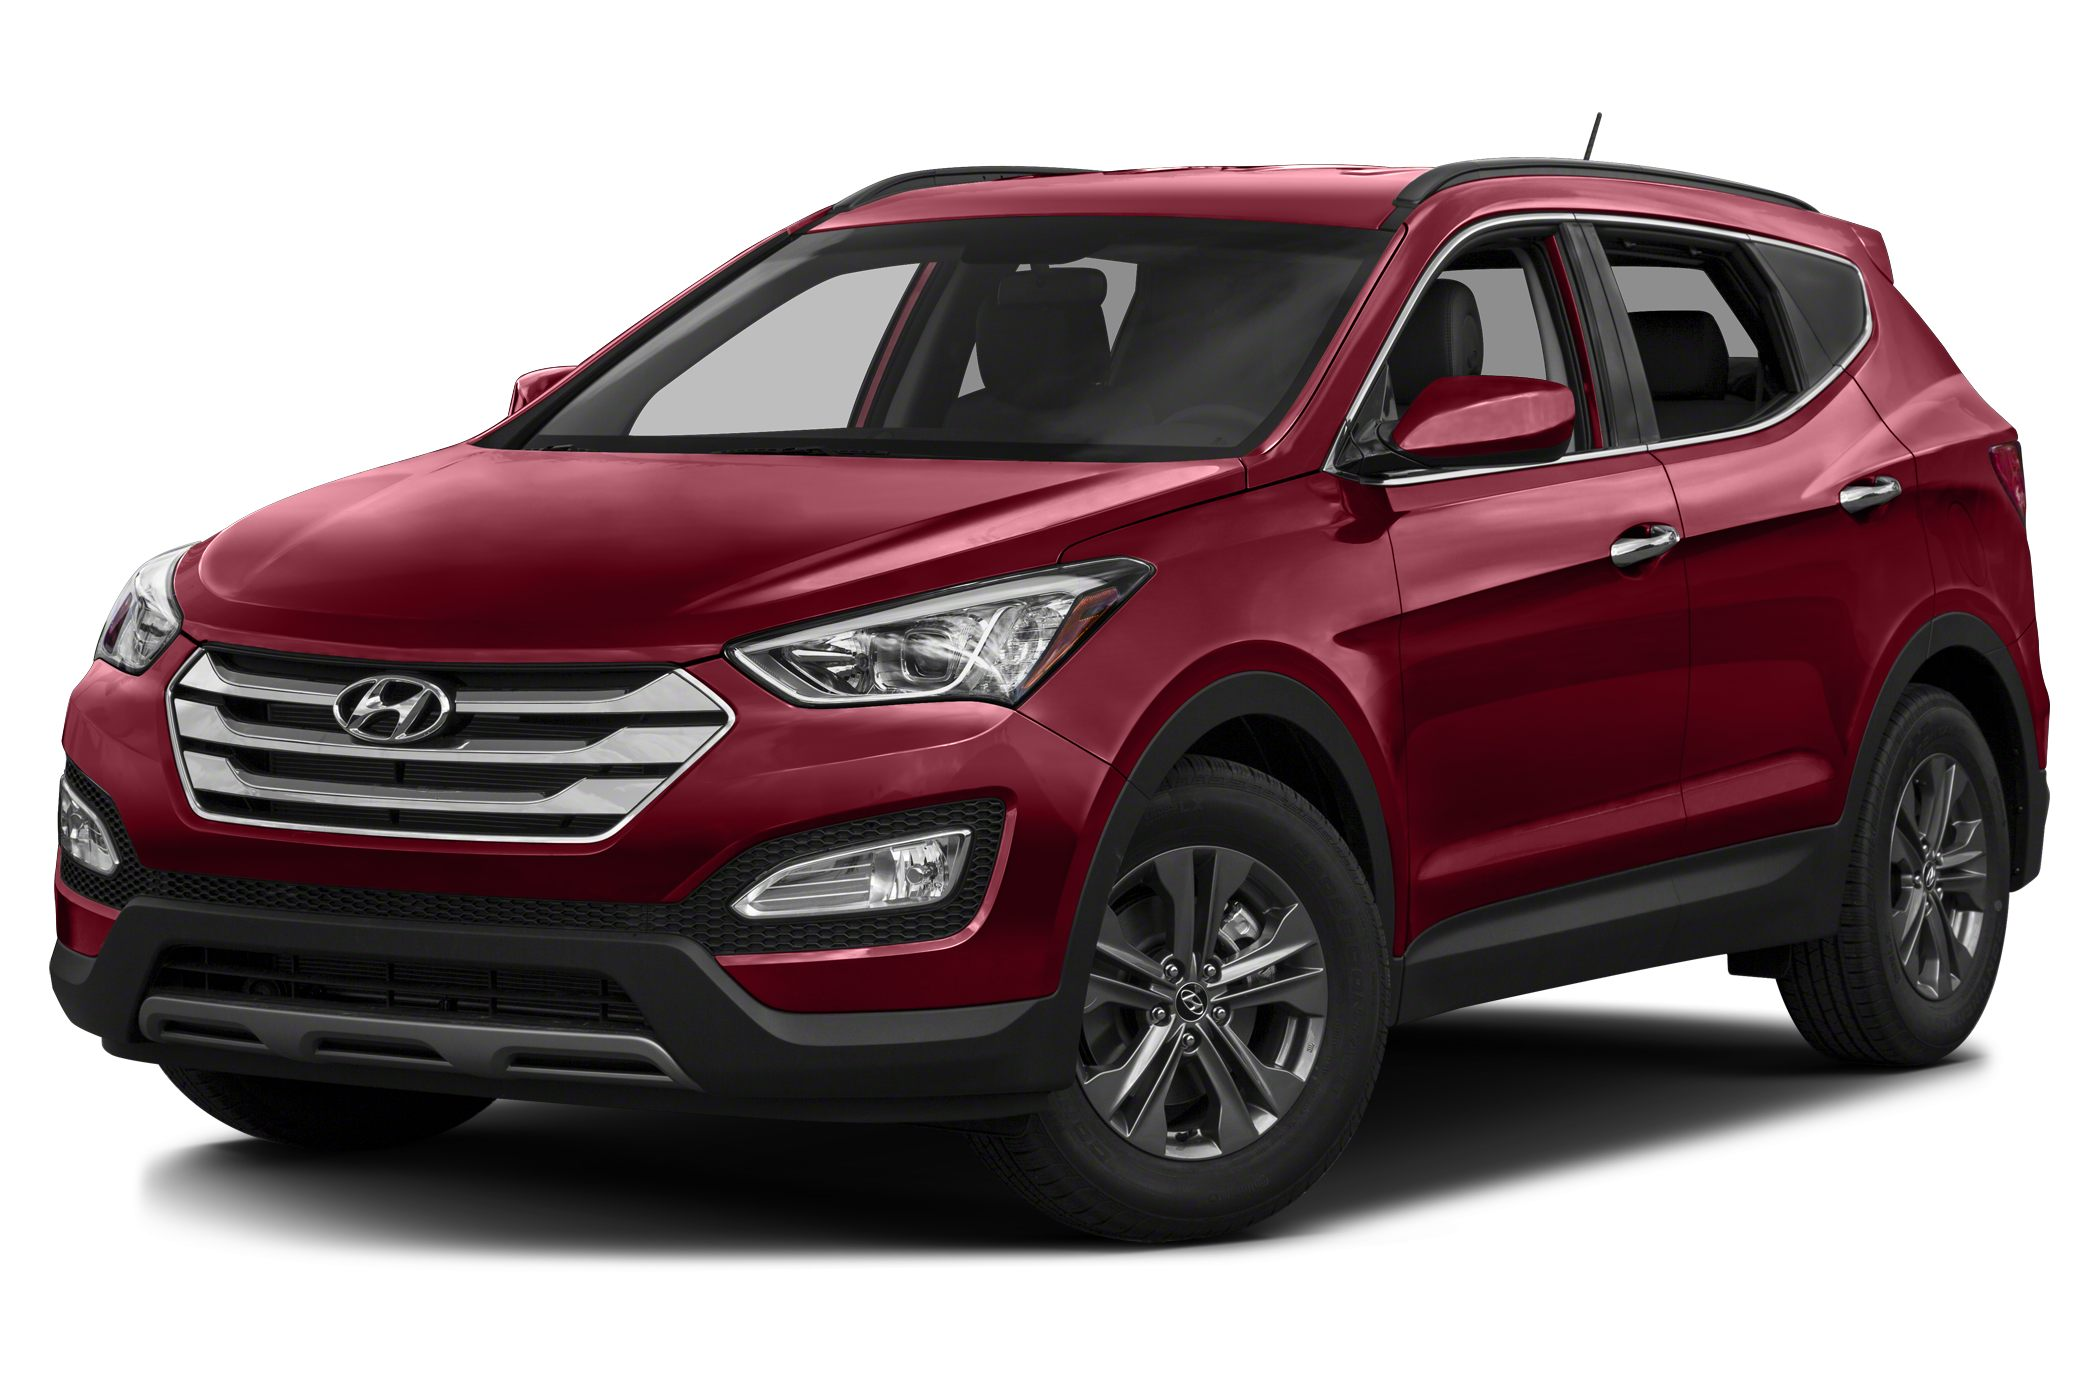 2015 Hyundai Santa Fe Sport 2.4L SUV for sale in Canandaigua for $30,015 with 33 miles.